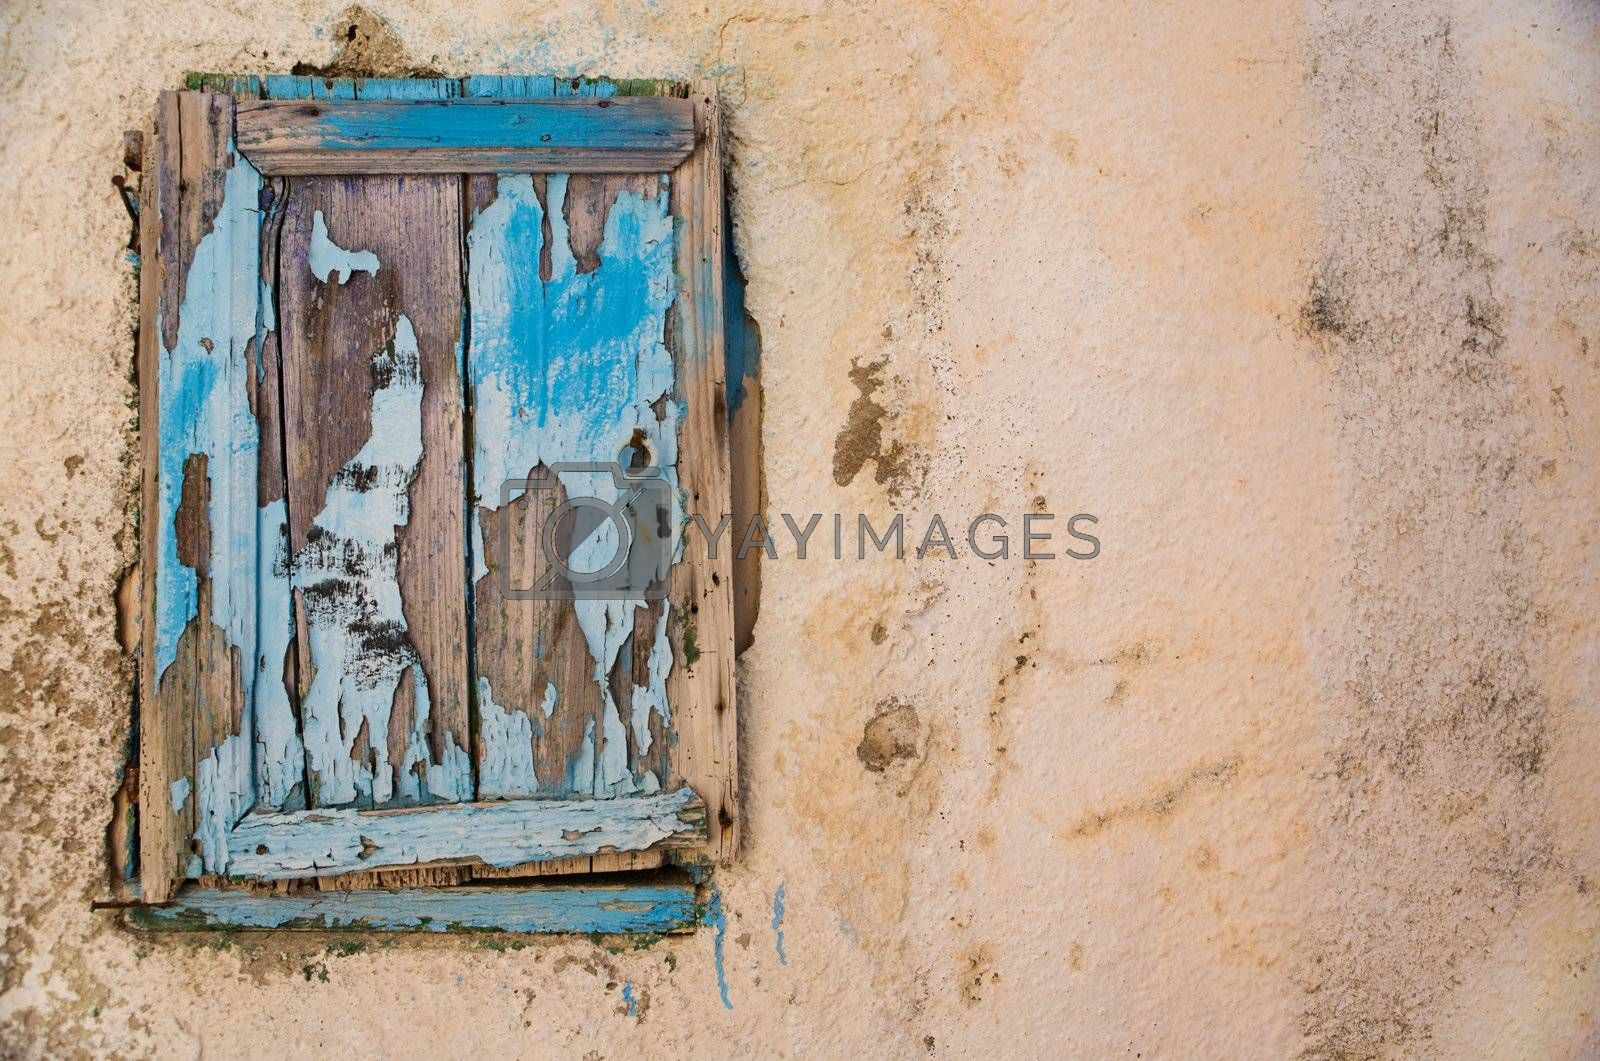 Vintage texture. Colorful exterior detail of old house